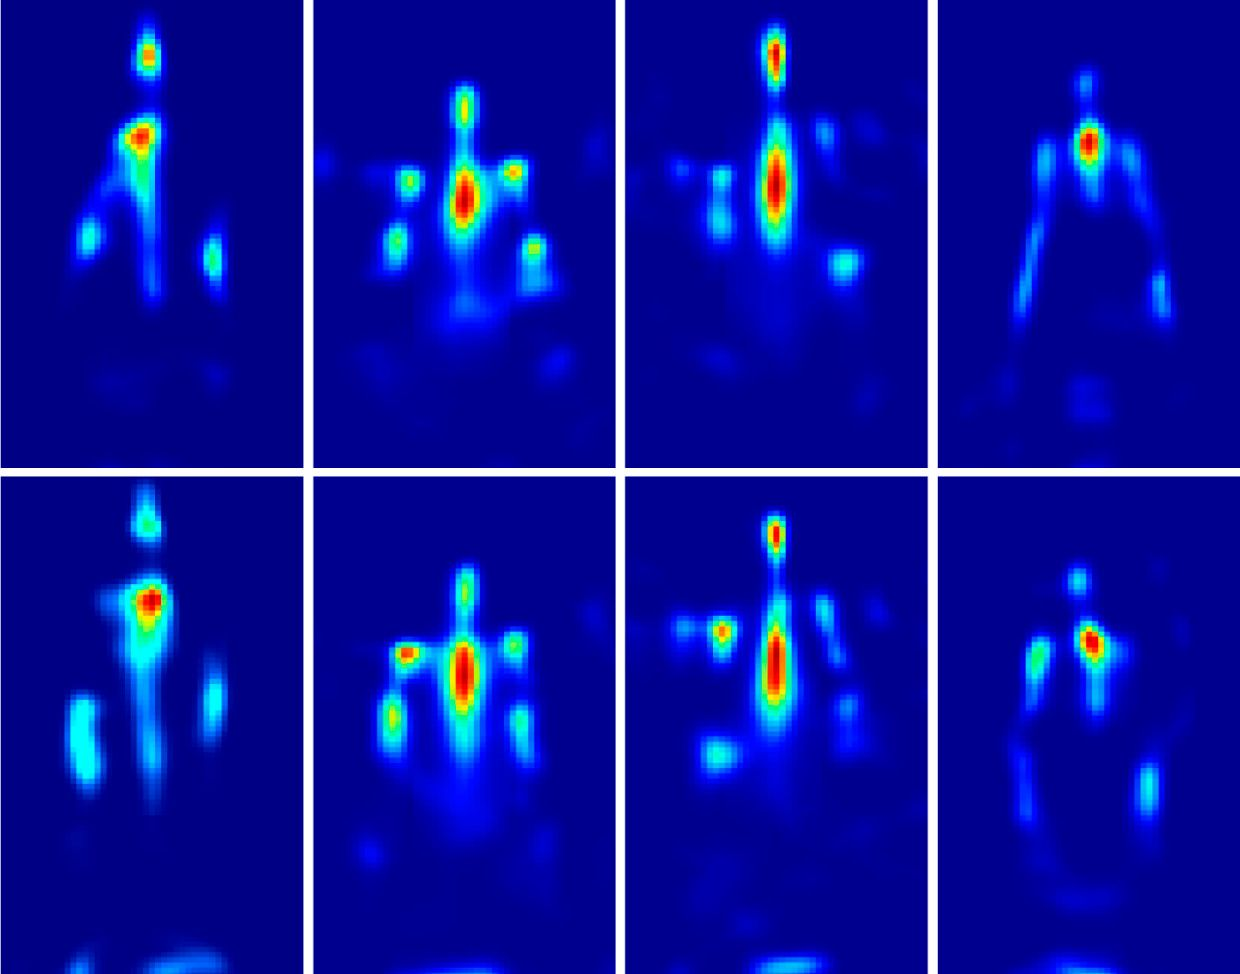 Images of human figures obtained using radio wave.